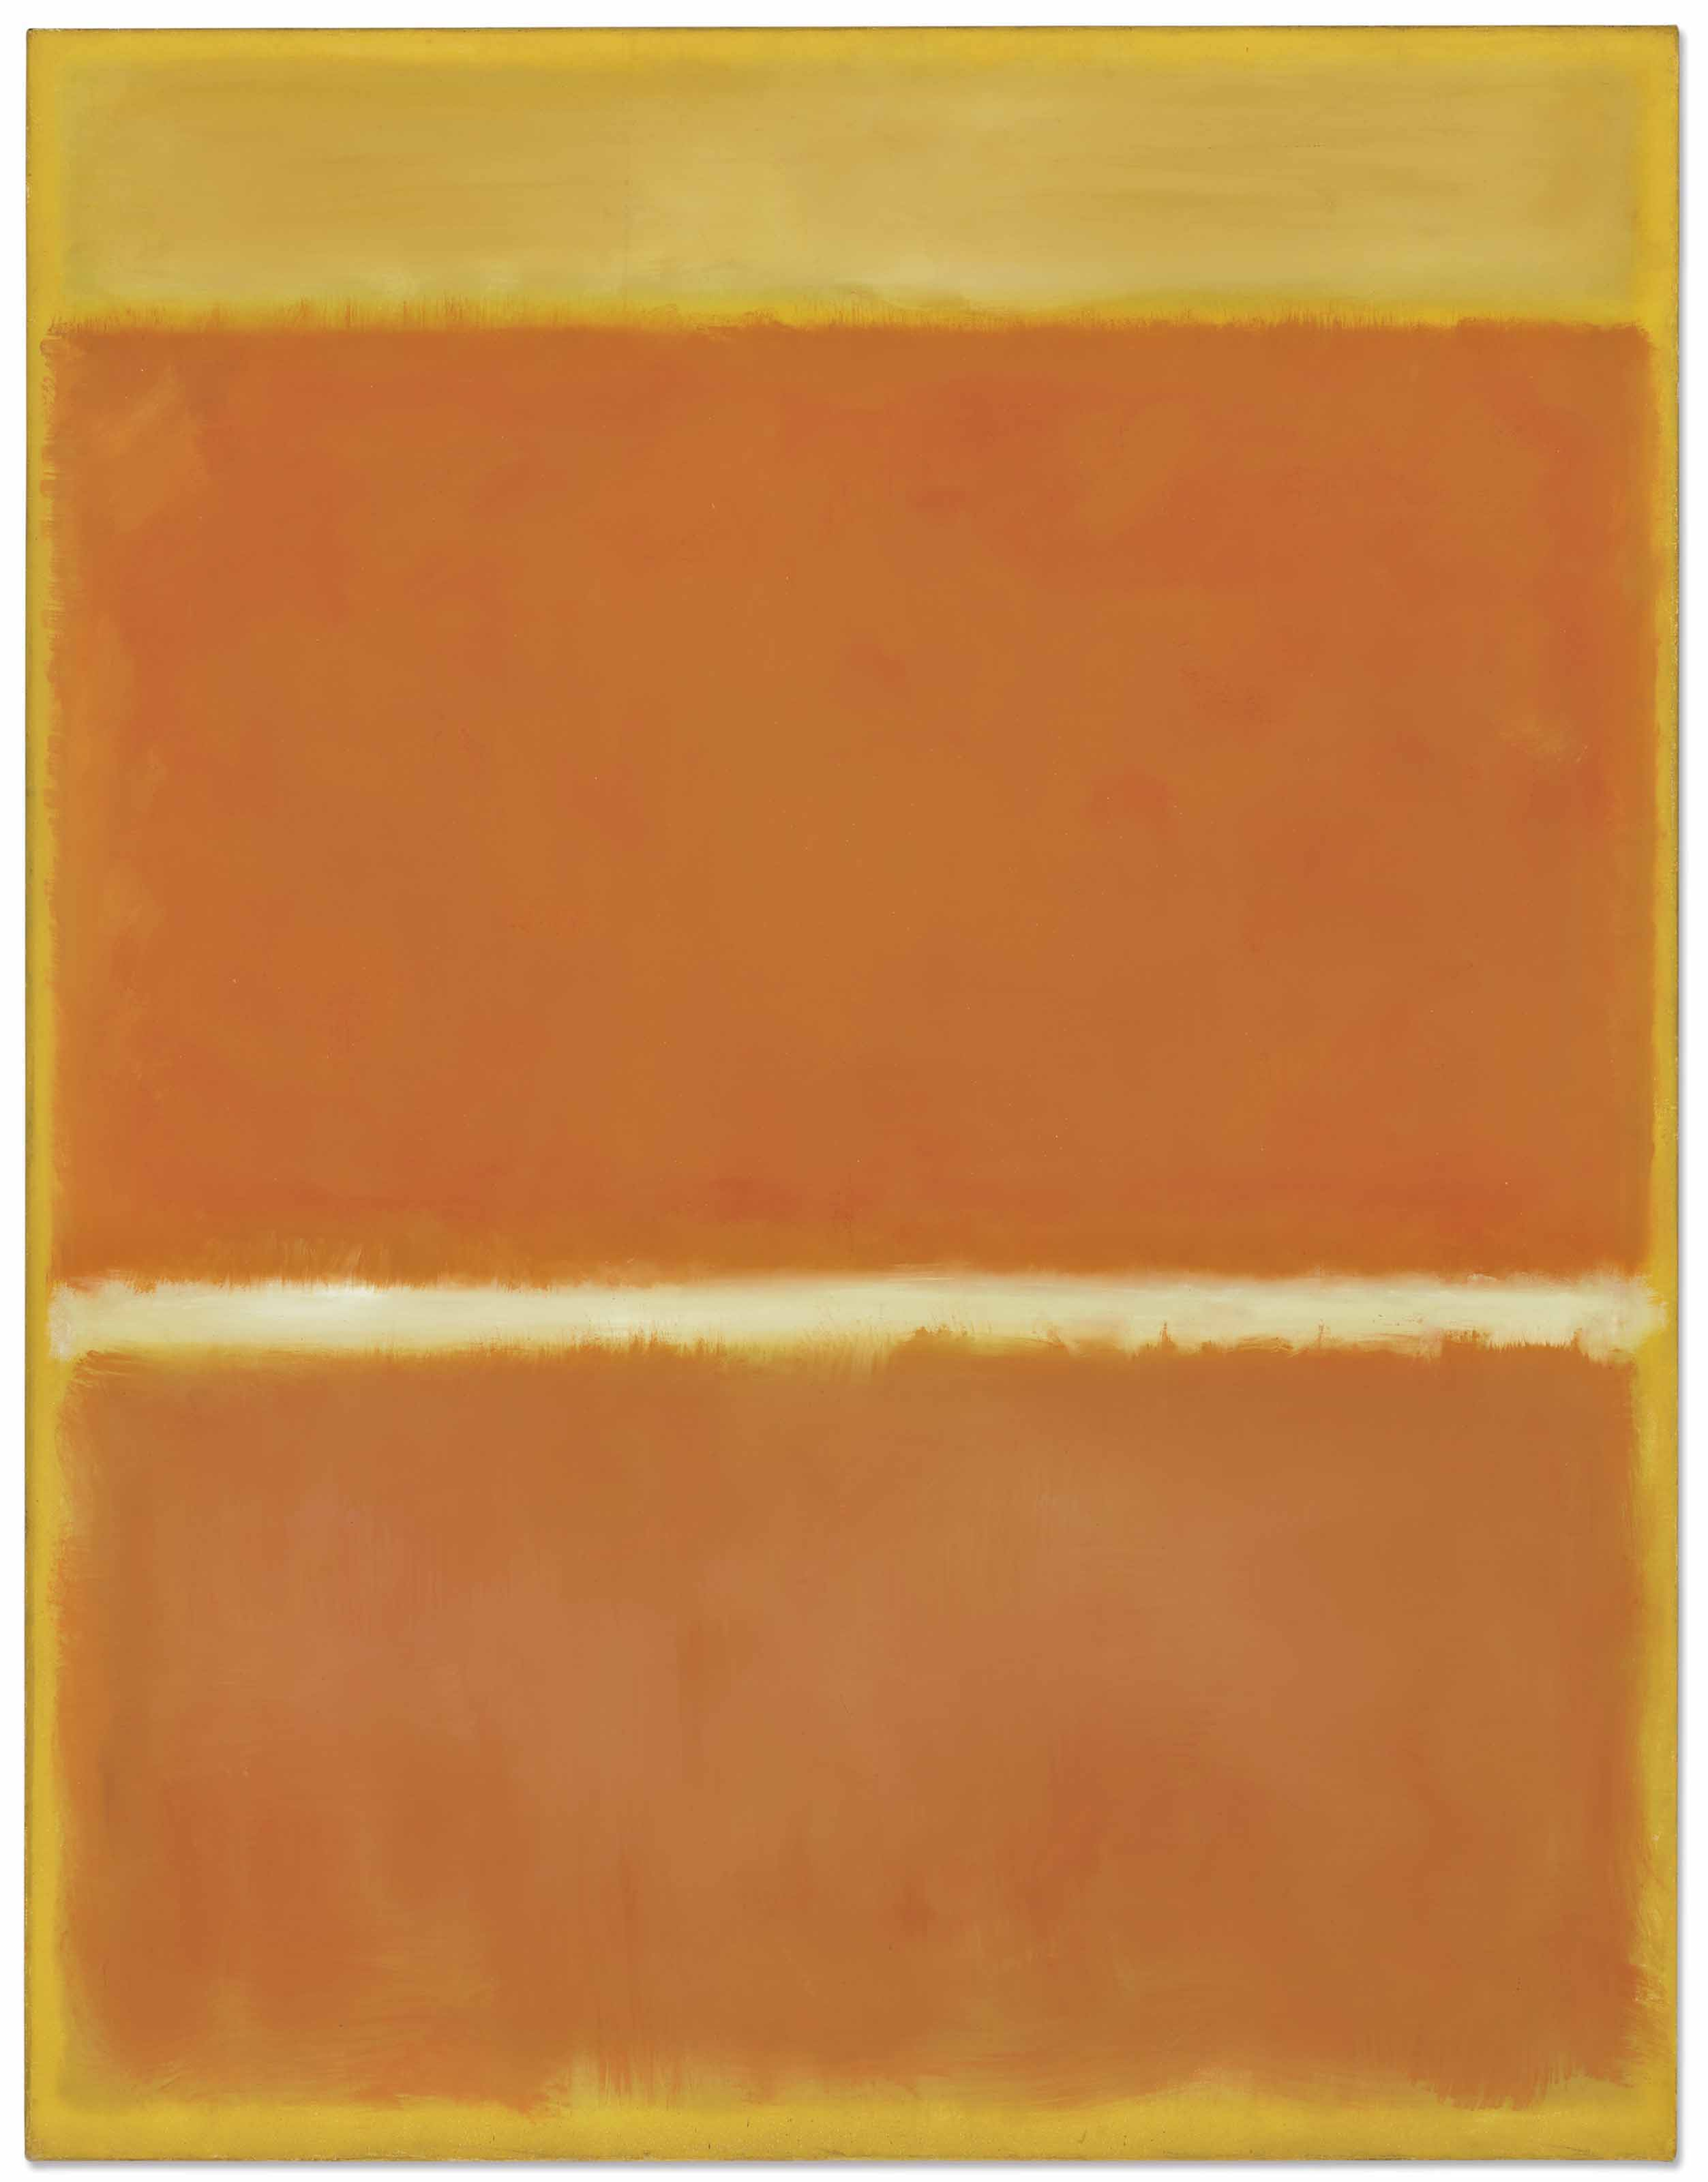 Mark Rothko (1903-1970), Saffron, painted in 1957. 69½ x 53¾  in (175.6 x 136.5  cm). Sold for $32,375,000 in the Post-War & Contemporary Art Evening Sale on 15 November 2017  at Christie's in New York